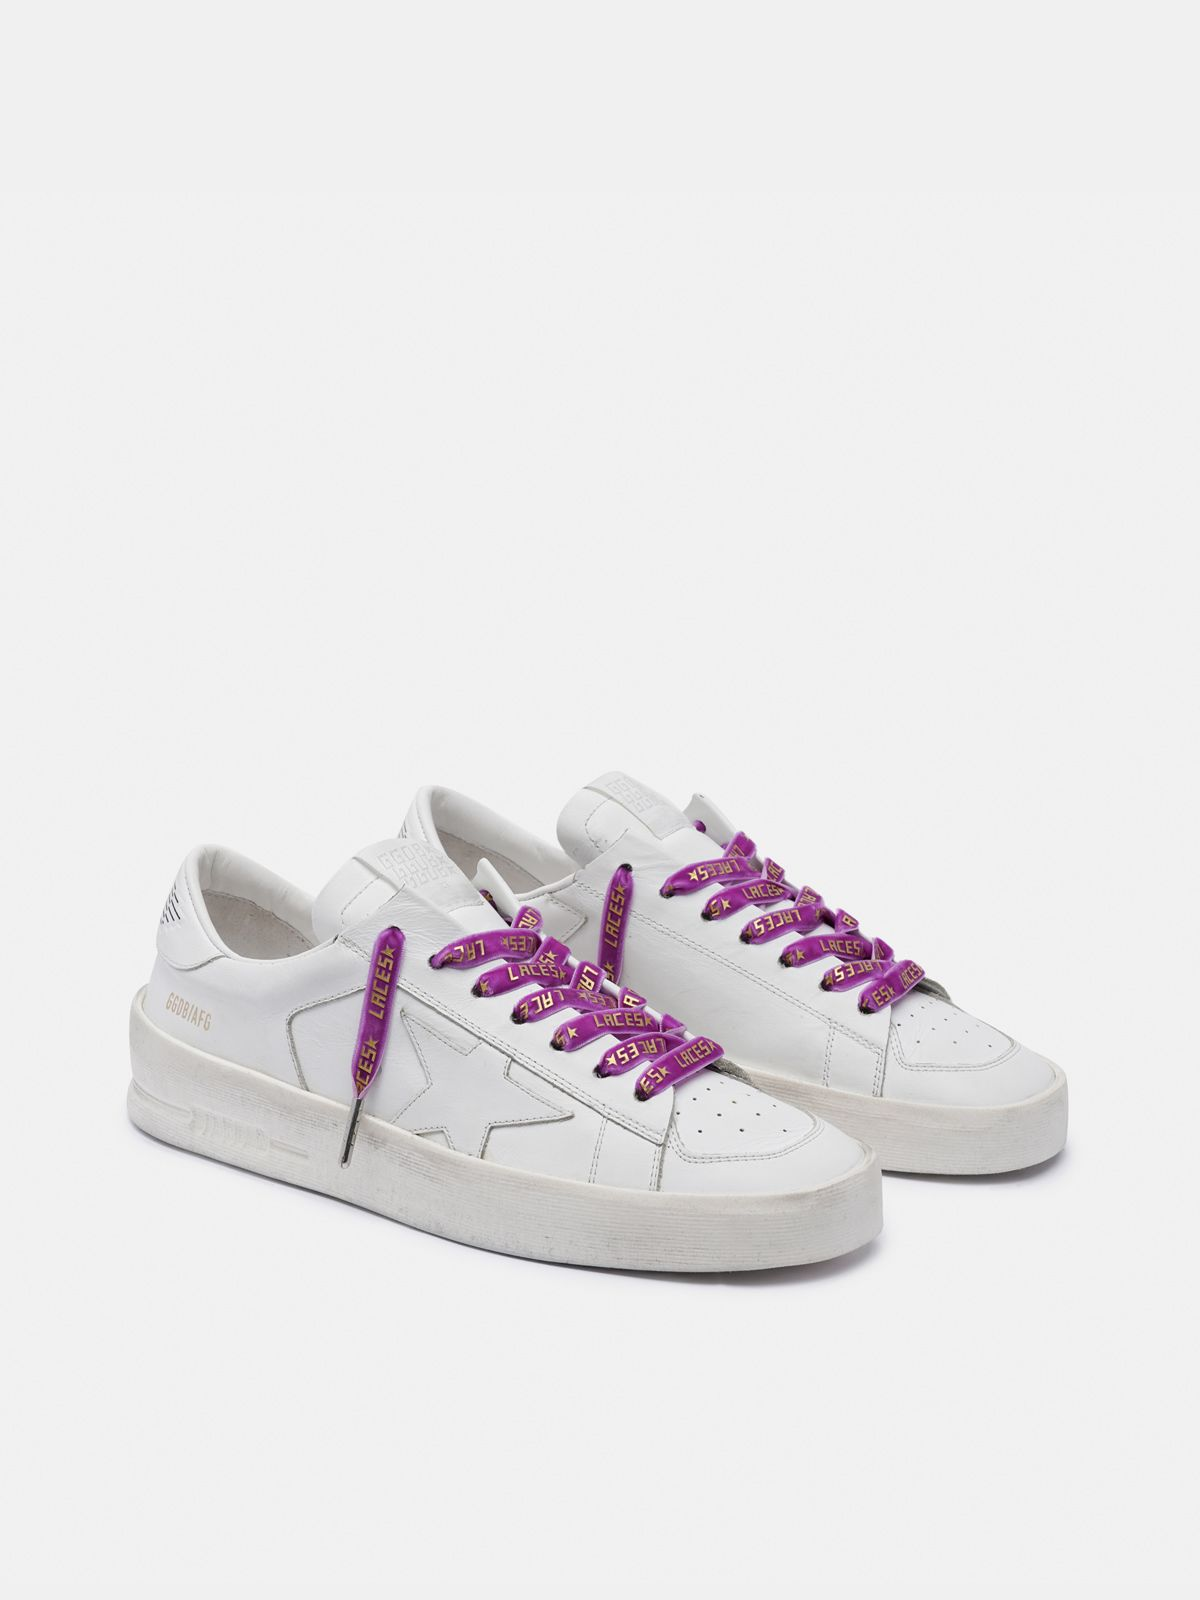 Golden Goose - Women's purple velvet laces with gold laces print in